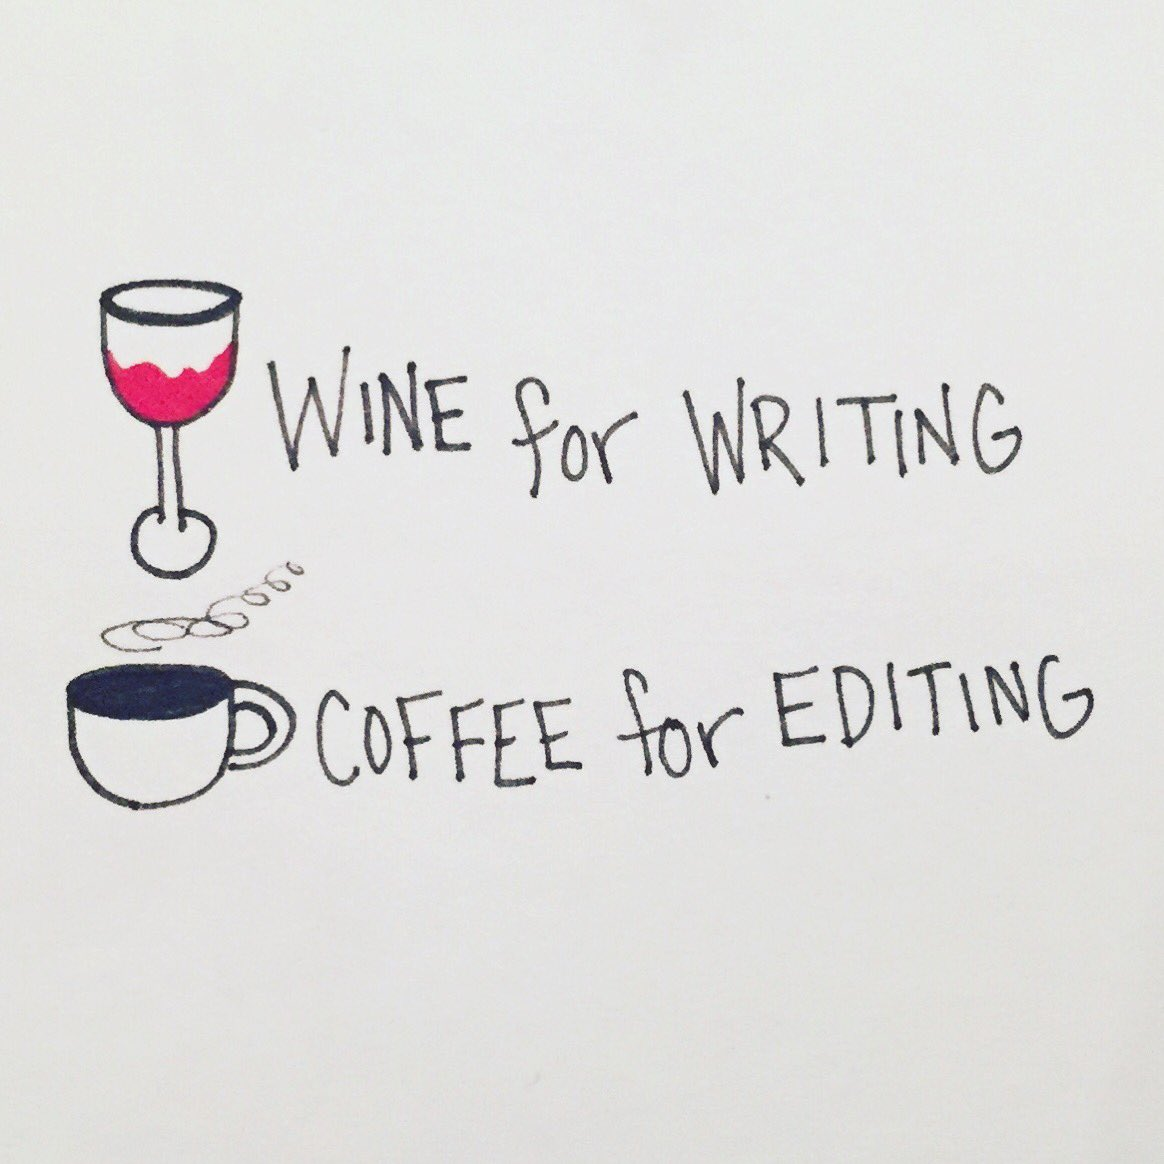 Today is a coffee day. #amediting